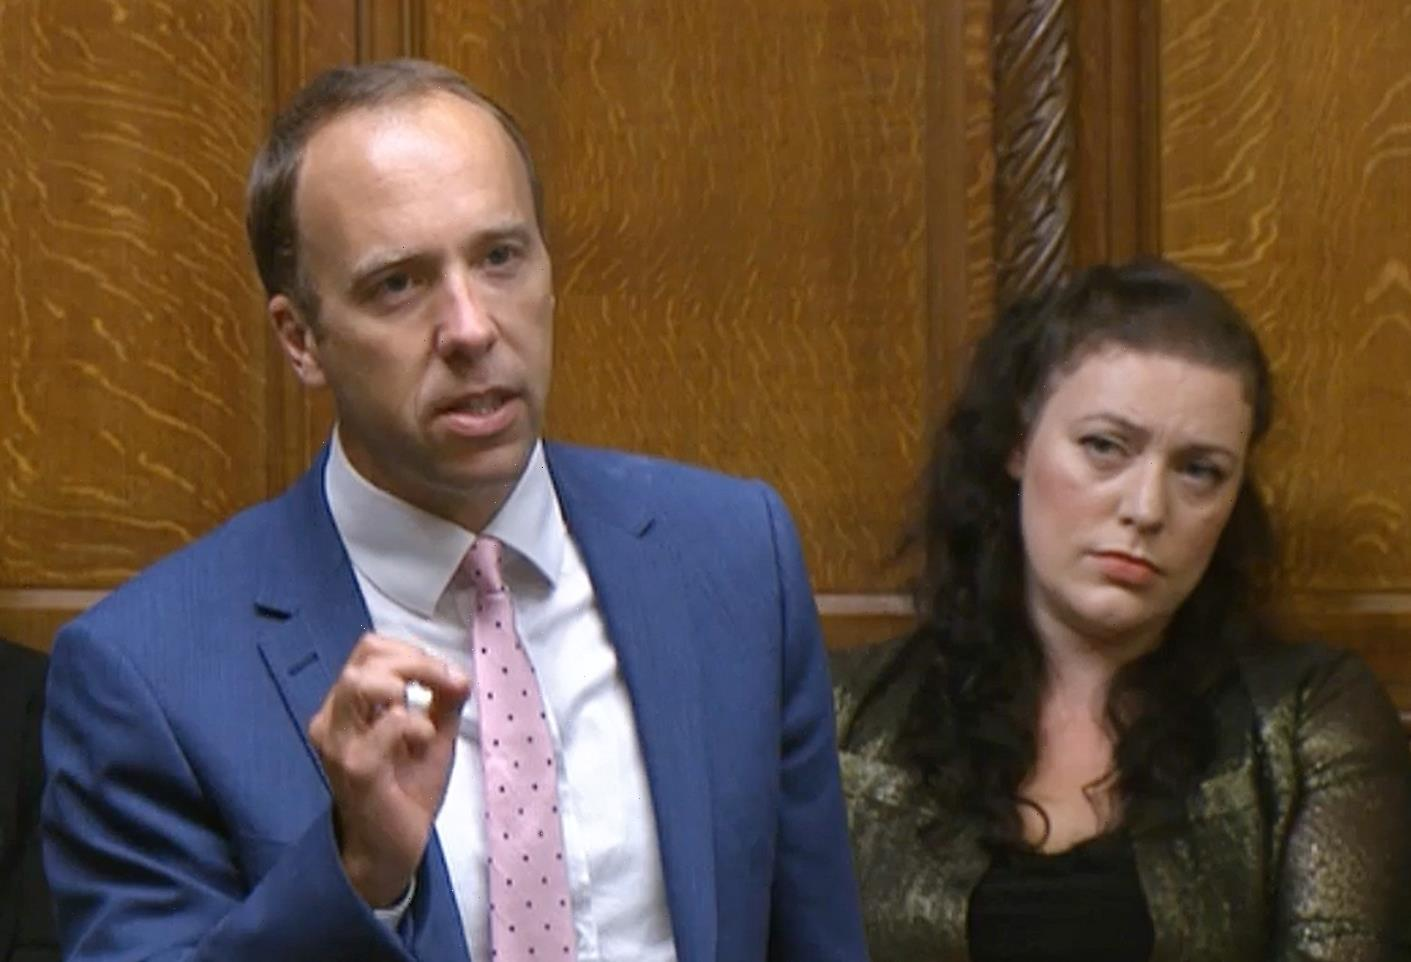 Matt Hancock jeered by MPs as he makes first Commons return since affair scandal